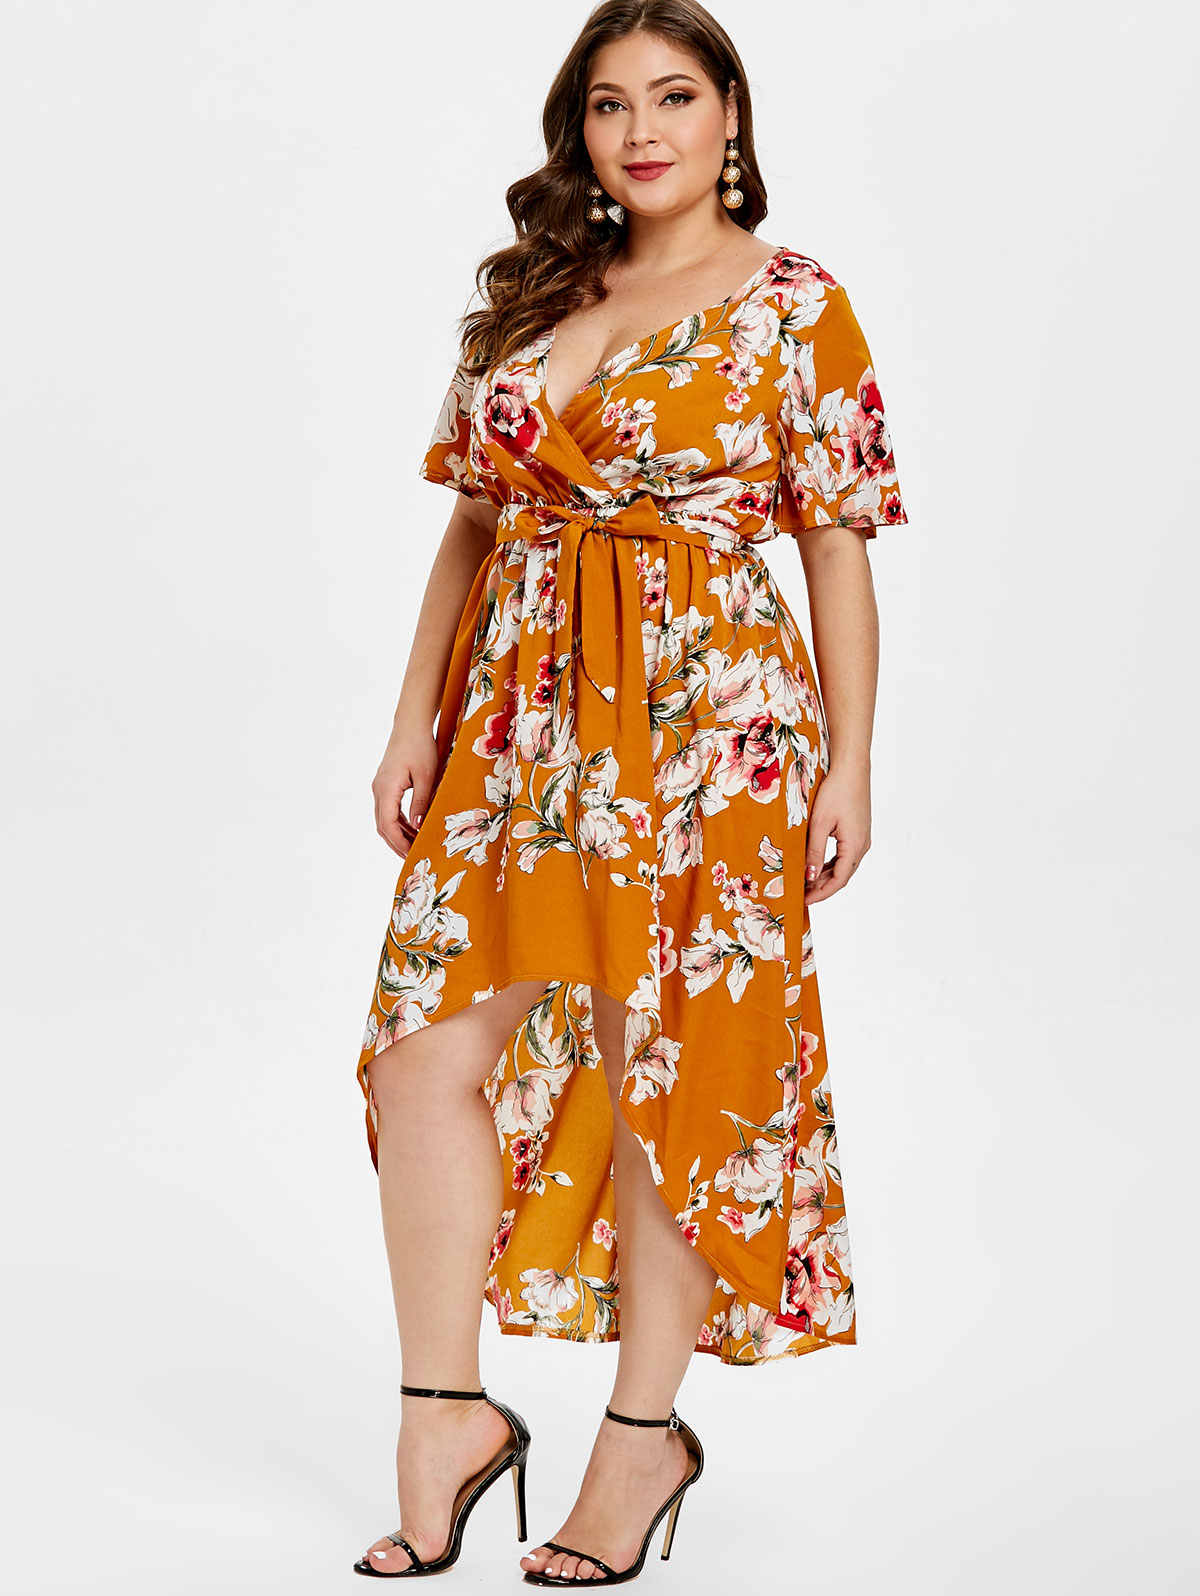 Wipalo Women Plus Size Floral Print High Low Dress Short Sleeve V Neck  Belted Bow Causal 970b98f52